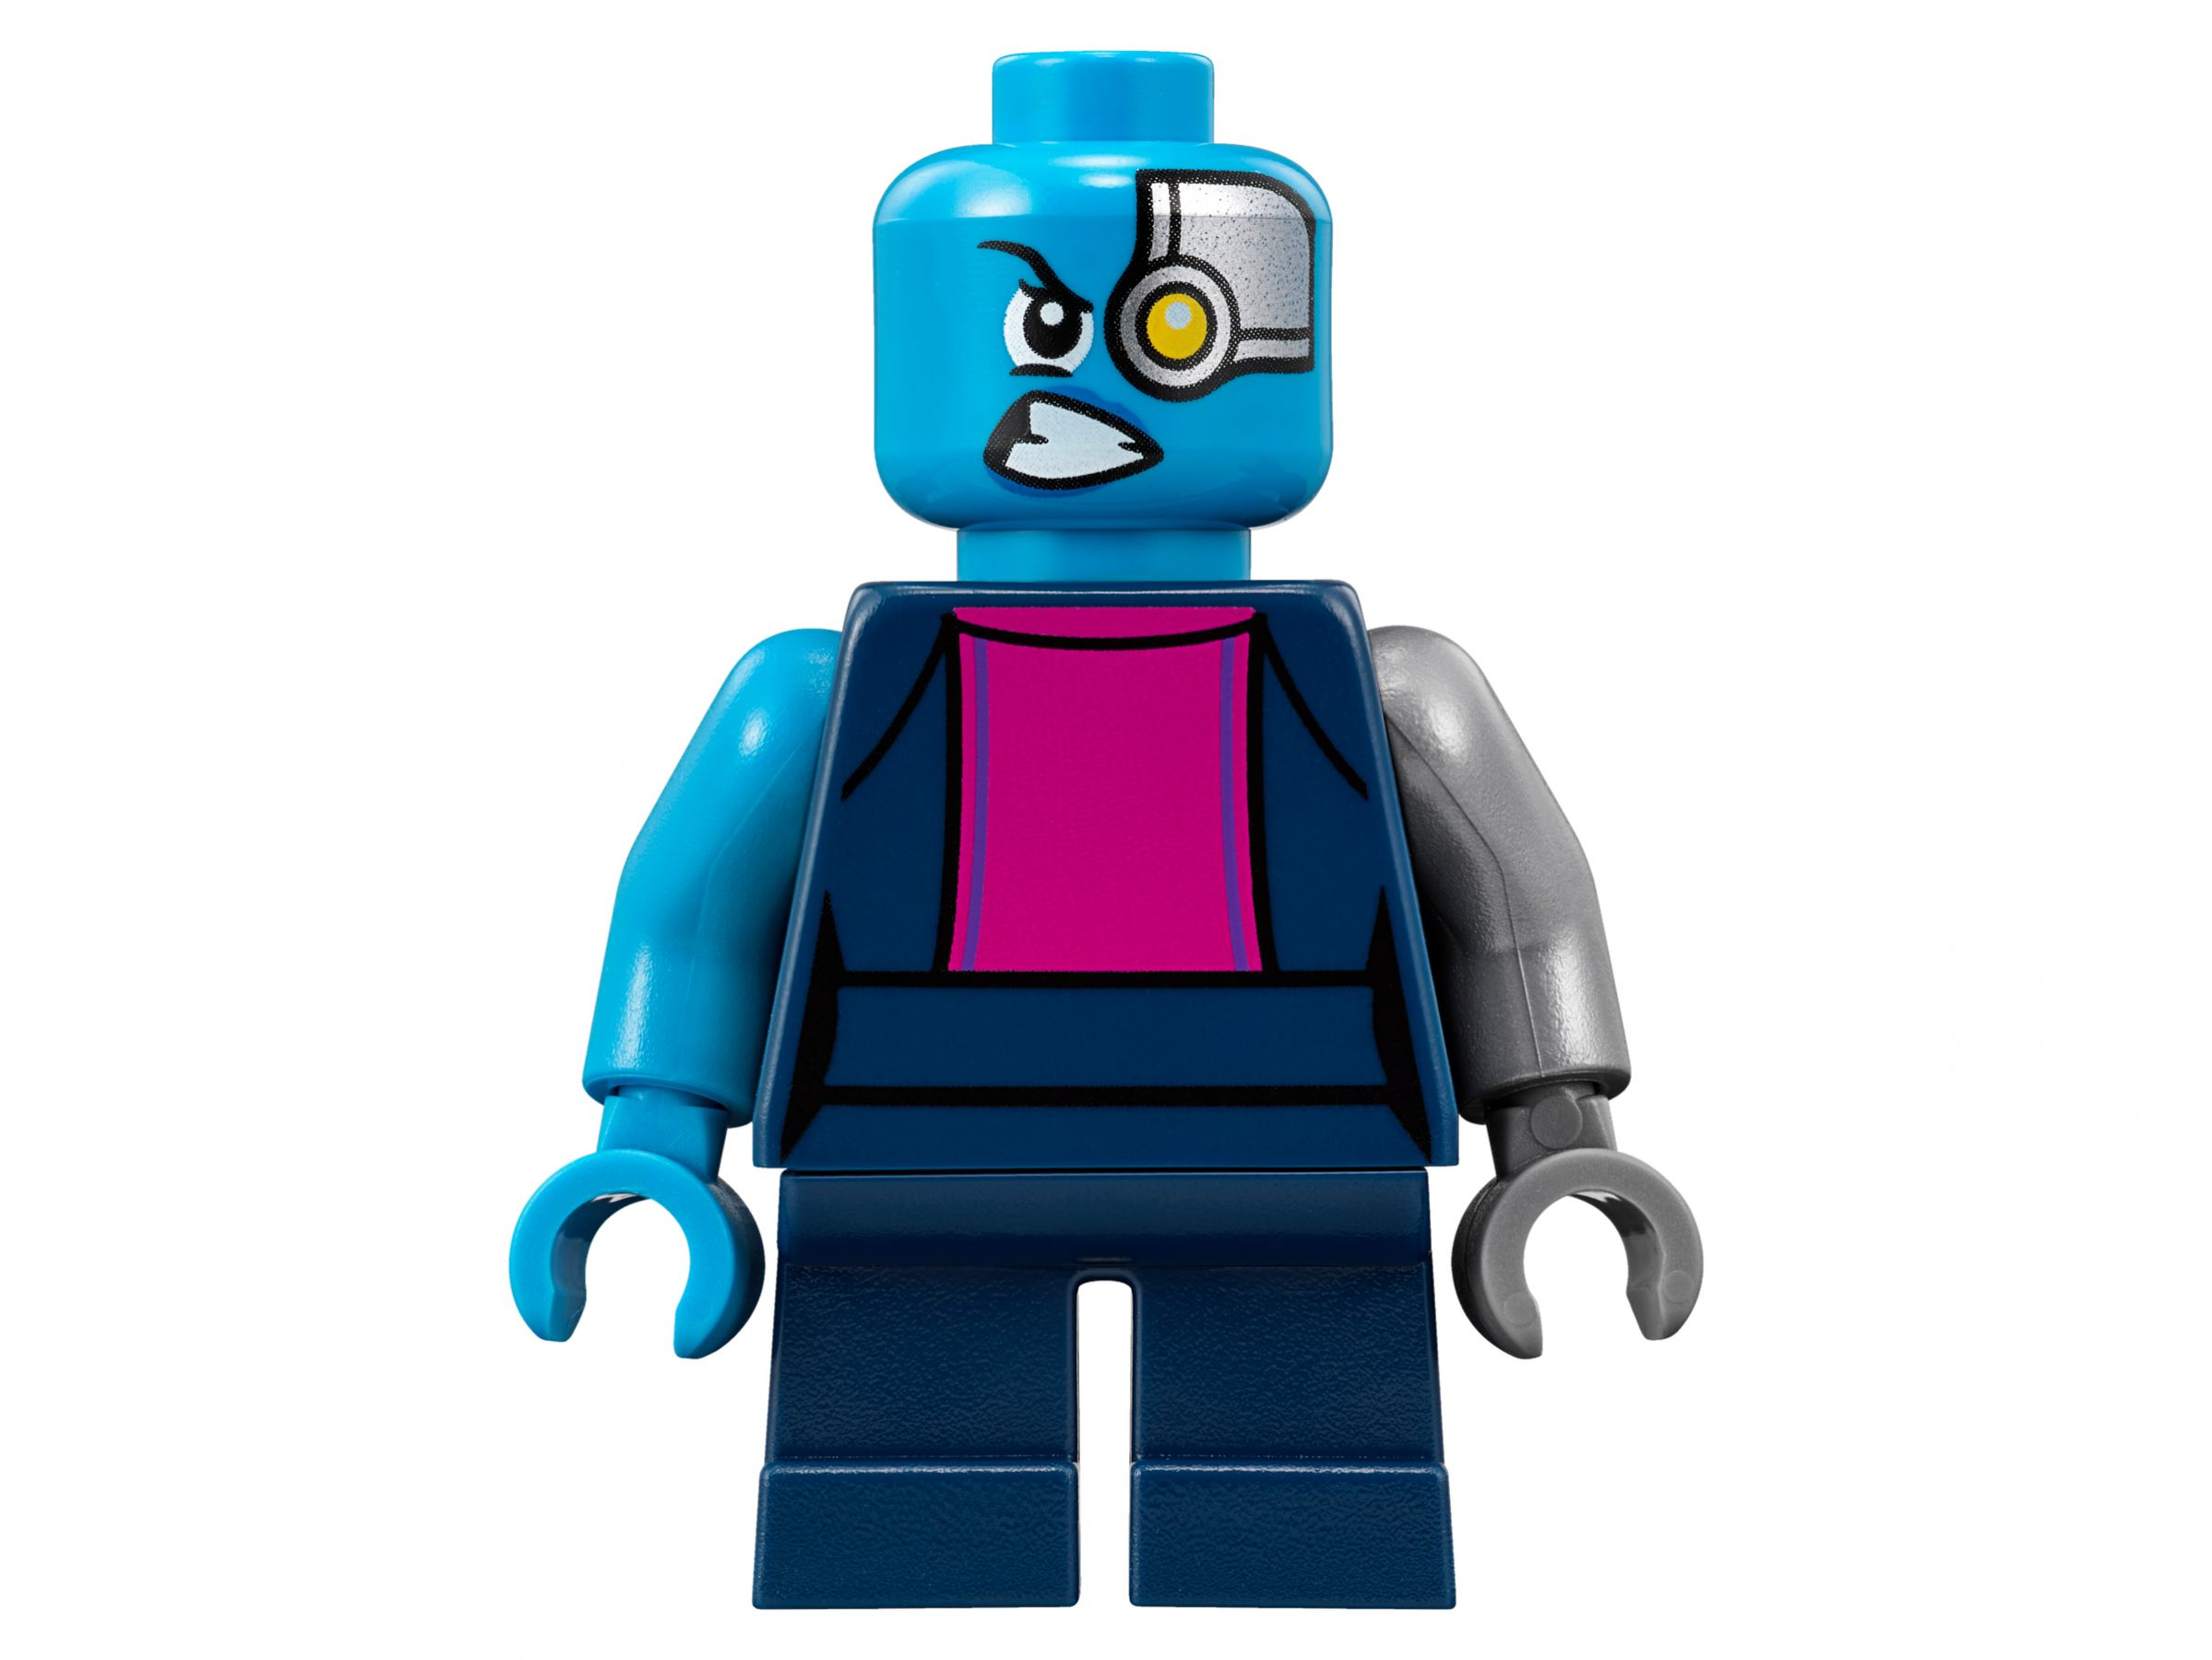 LEGO Super Heroes 76090 Mighty Micros: Star-Lord vs. Nebula LEGO_76090_alt7.jpg